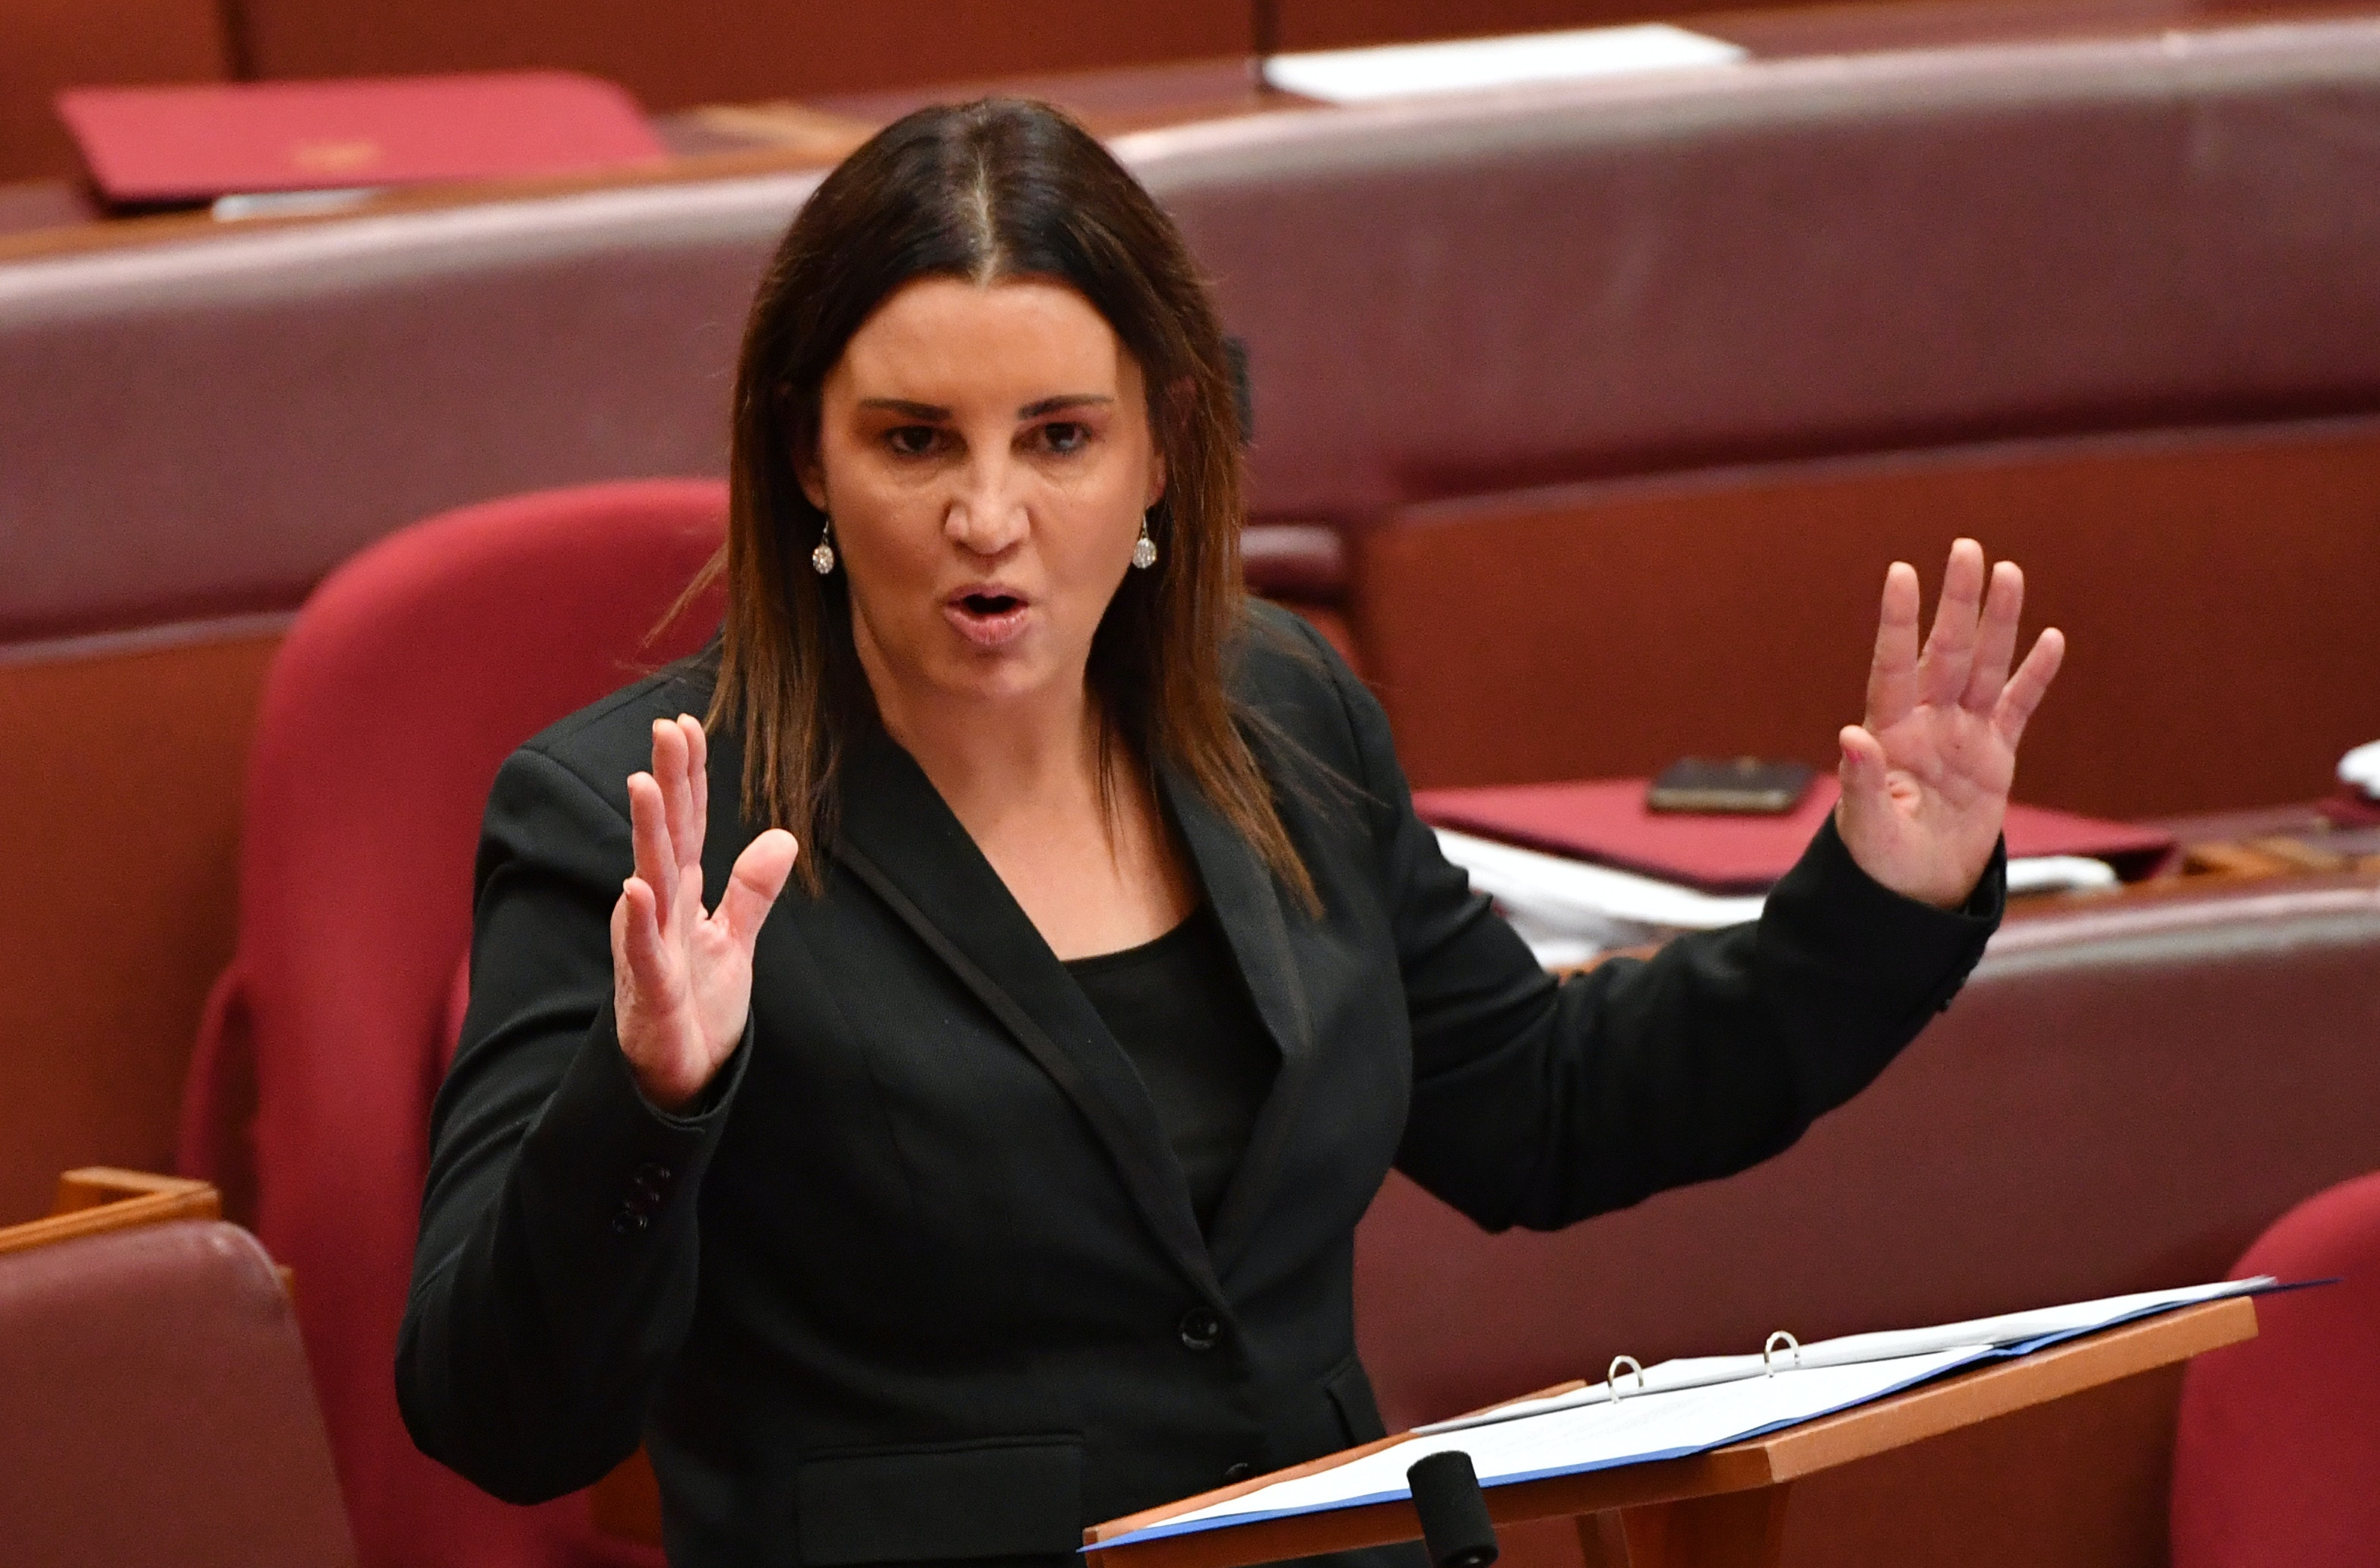 Senate crossbenchers take the first steps on lobbying reform – now to ensure it succeeds